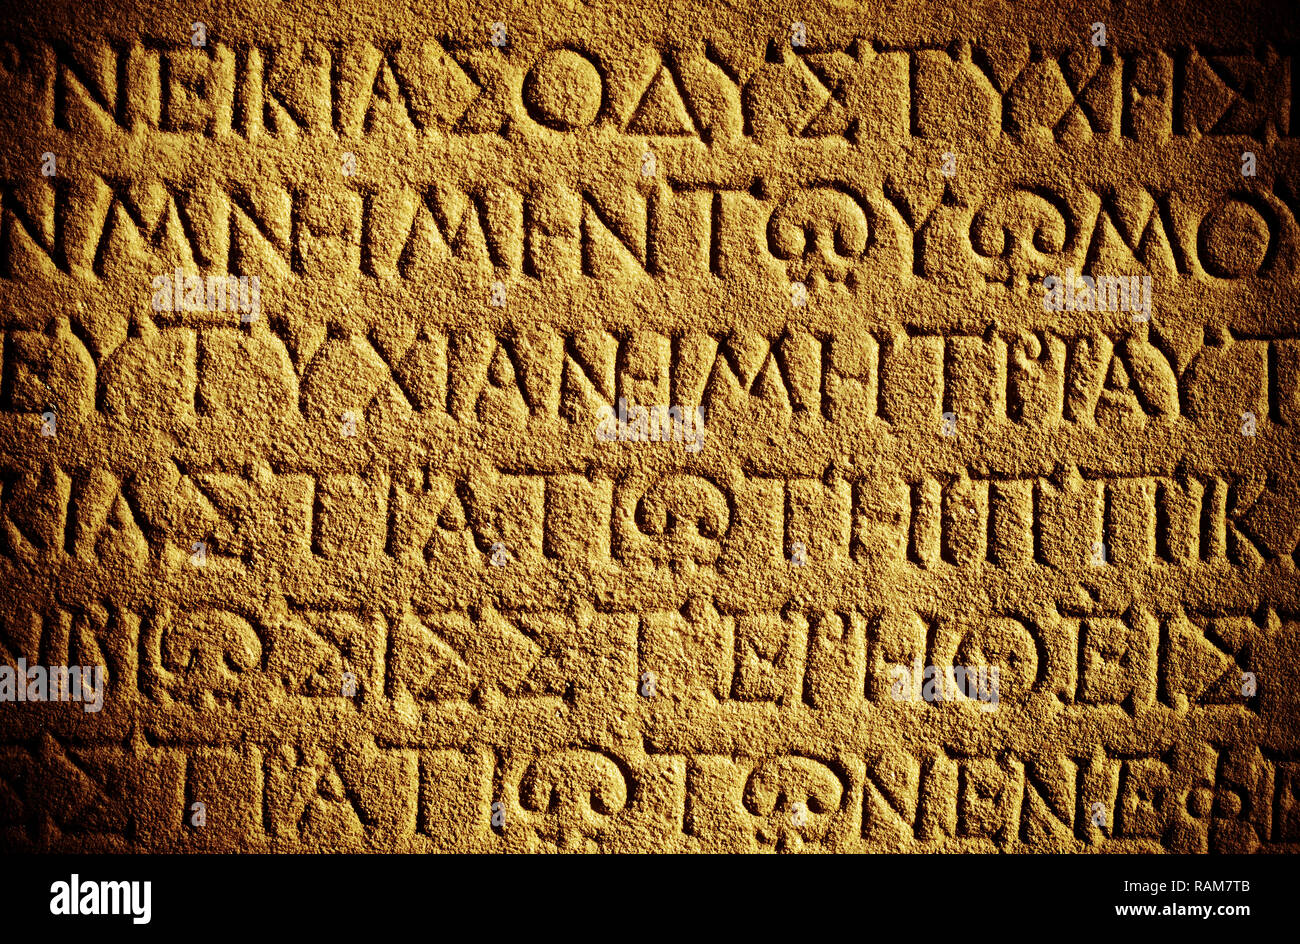 Antique Historical Ancient Greek Words on Marble Stone Stock